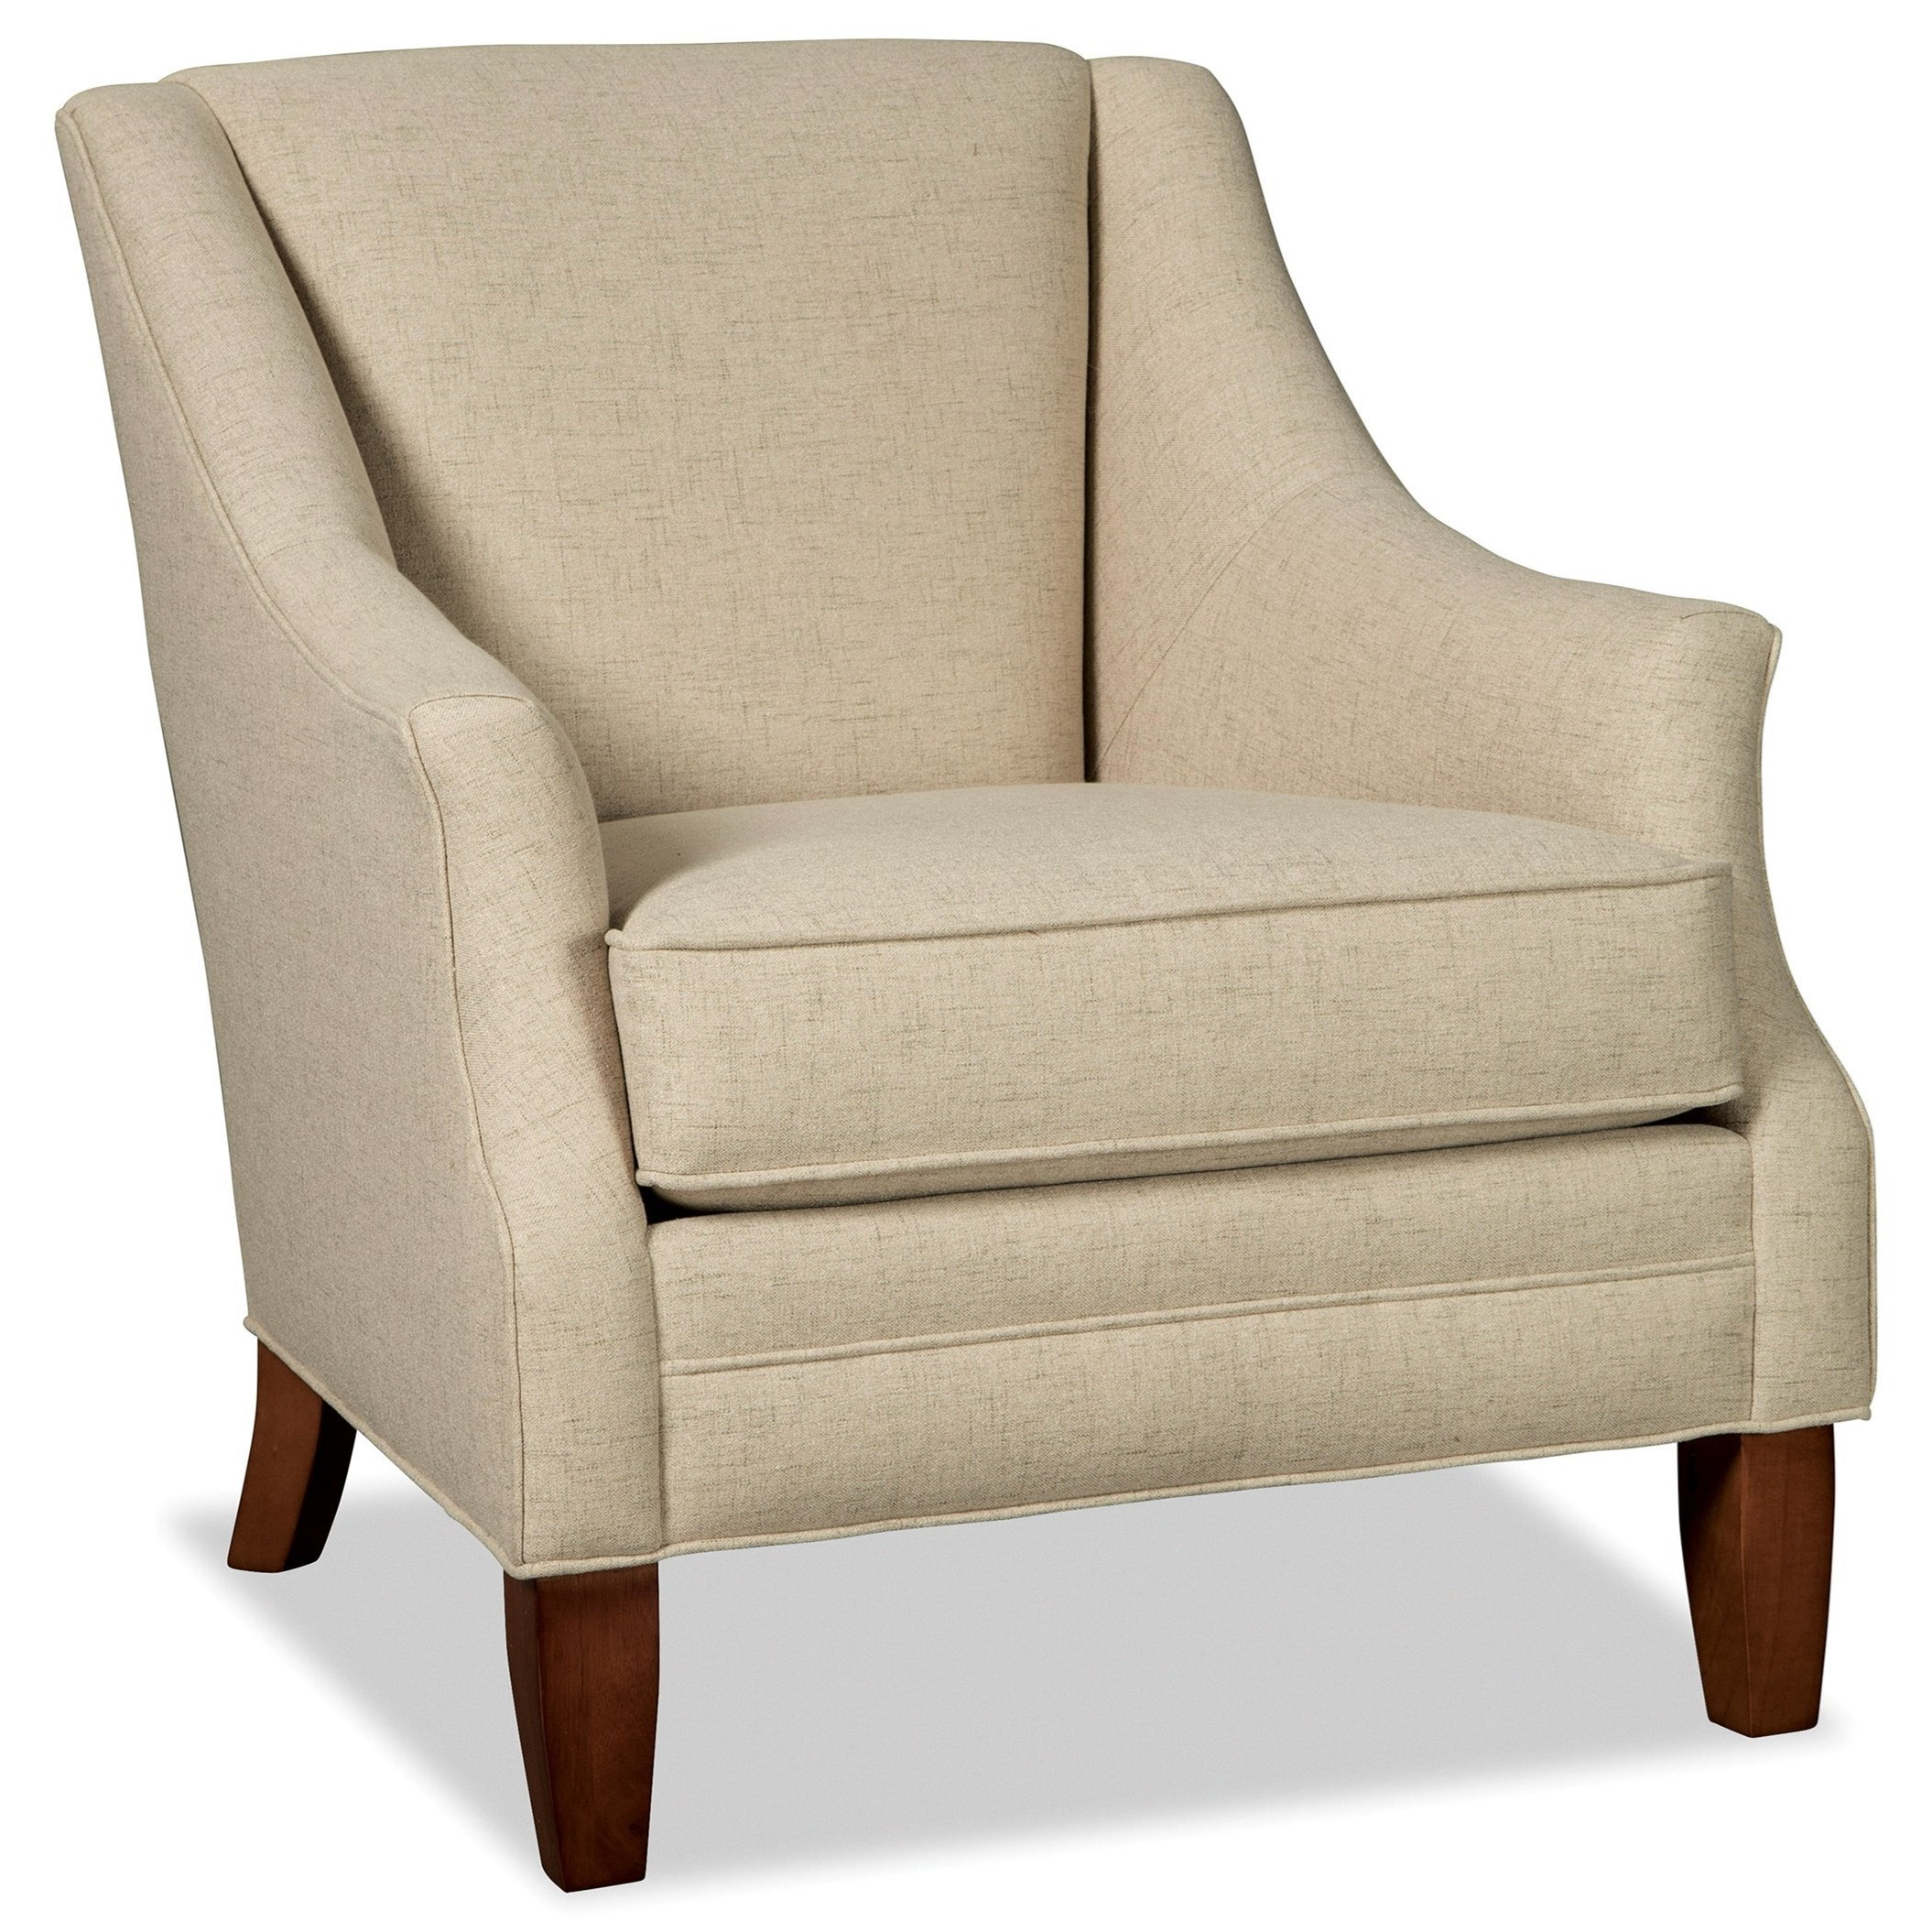 craftmaster chair and a half i need for my bedroom 073910 accent with flare tapered arms zak s fine furniture upholstered chairs